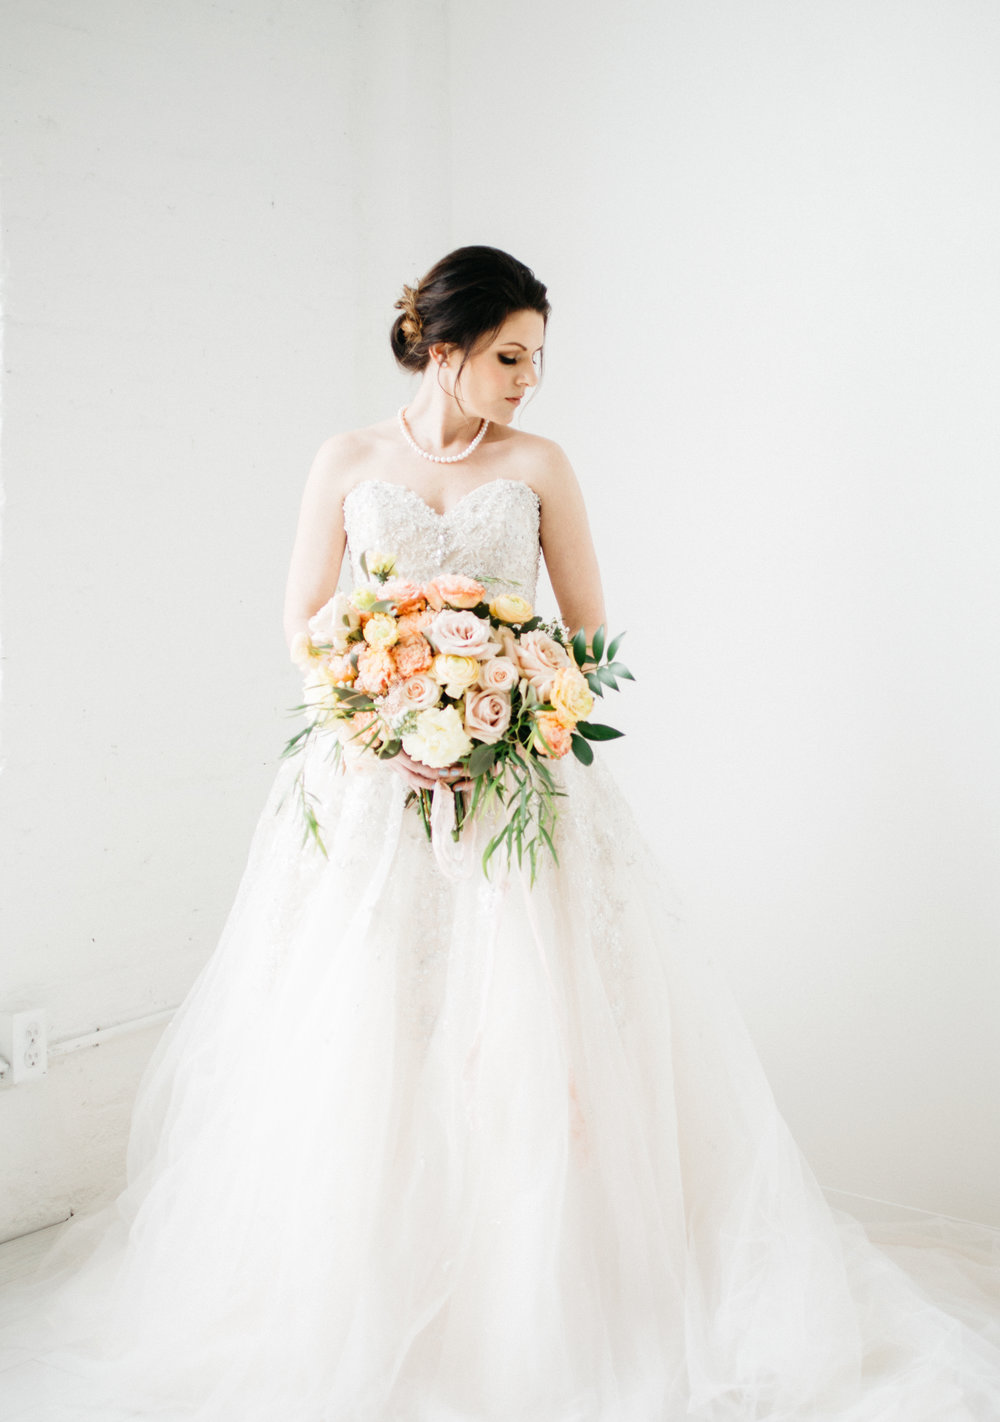 lulus bridal | kate mcleod studio